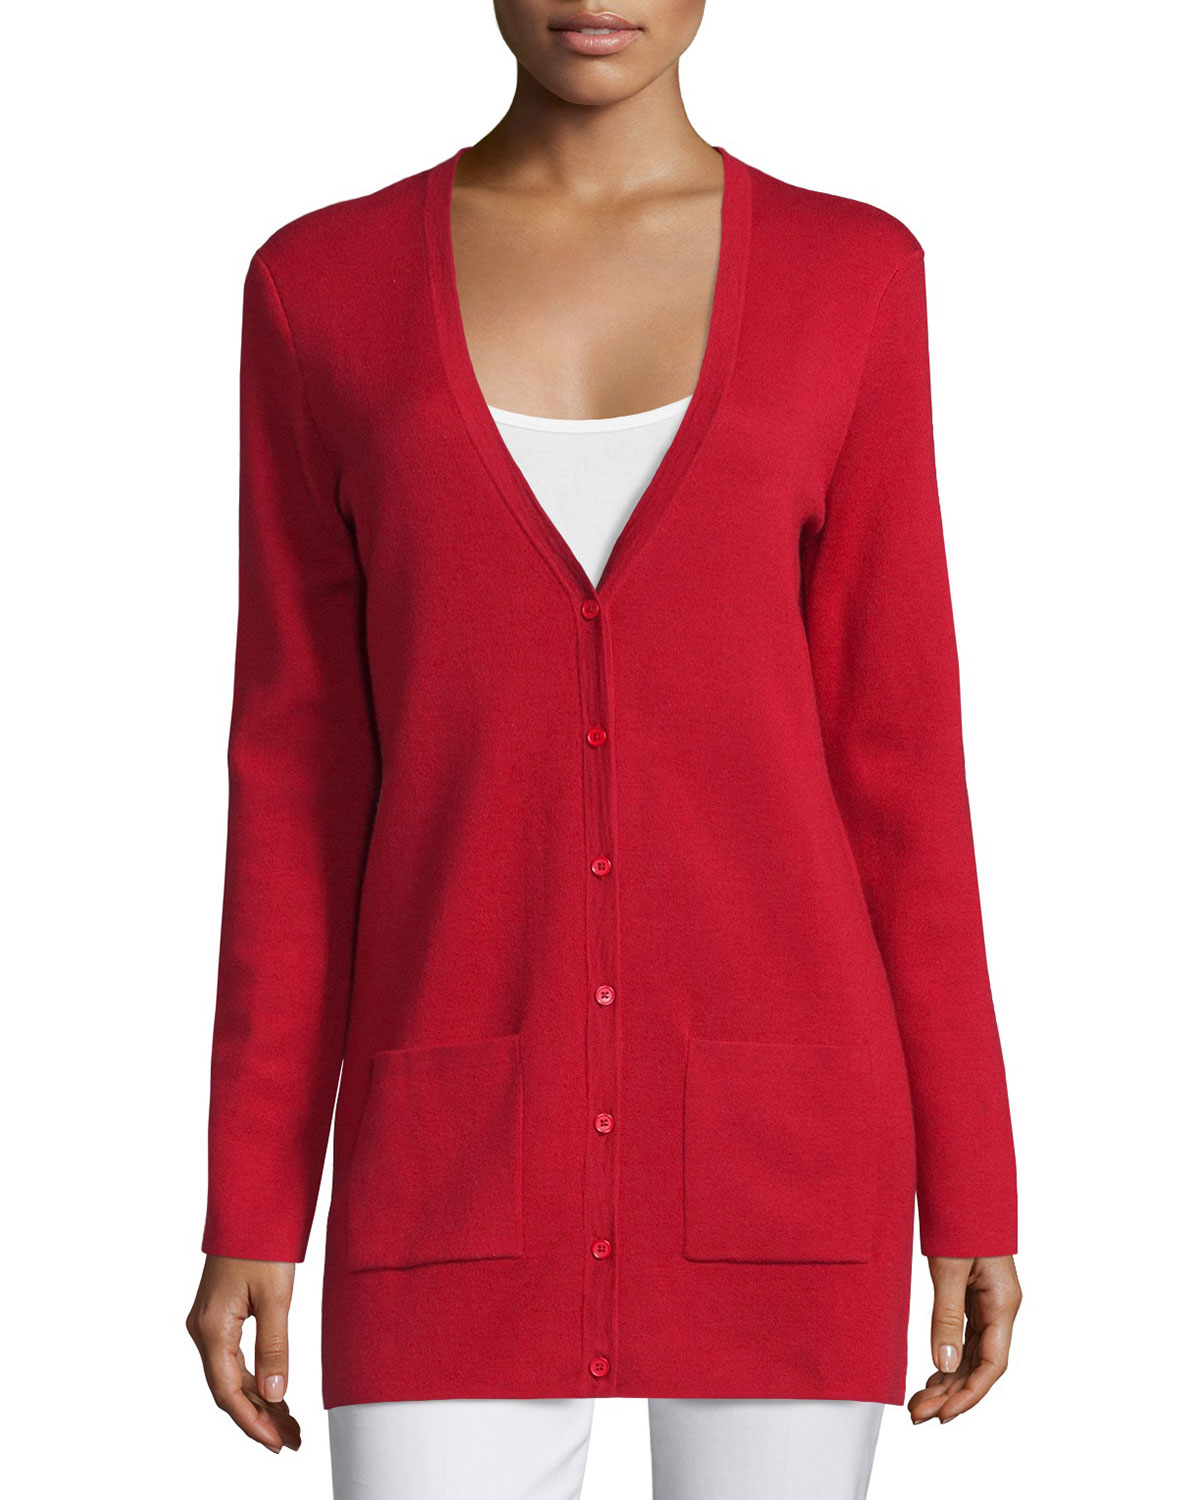 Michael kors Button-front Long Cashmere Cardigan in Red ...